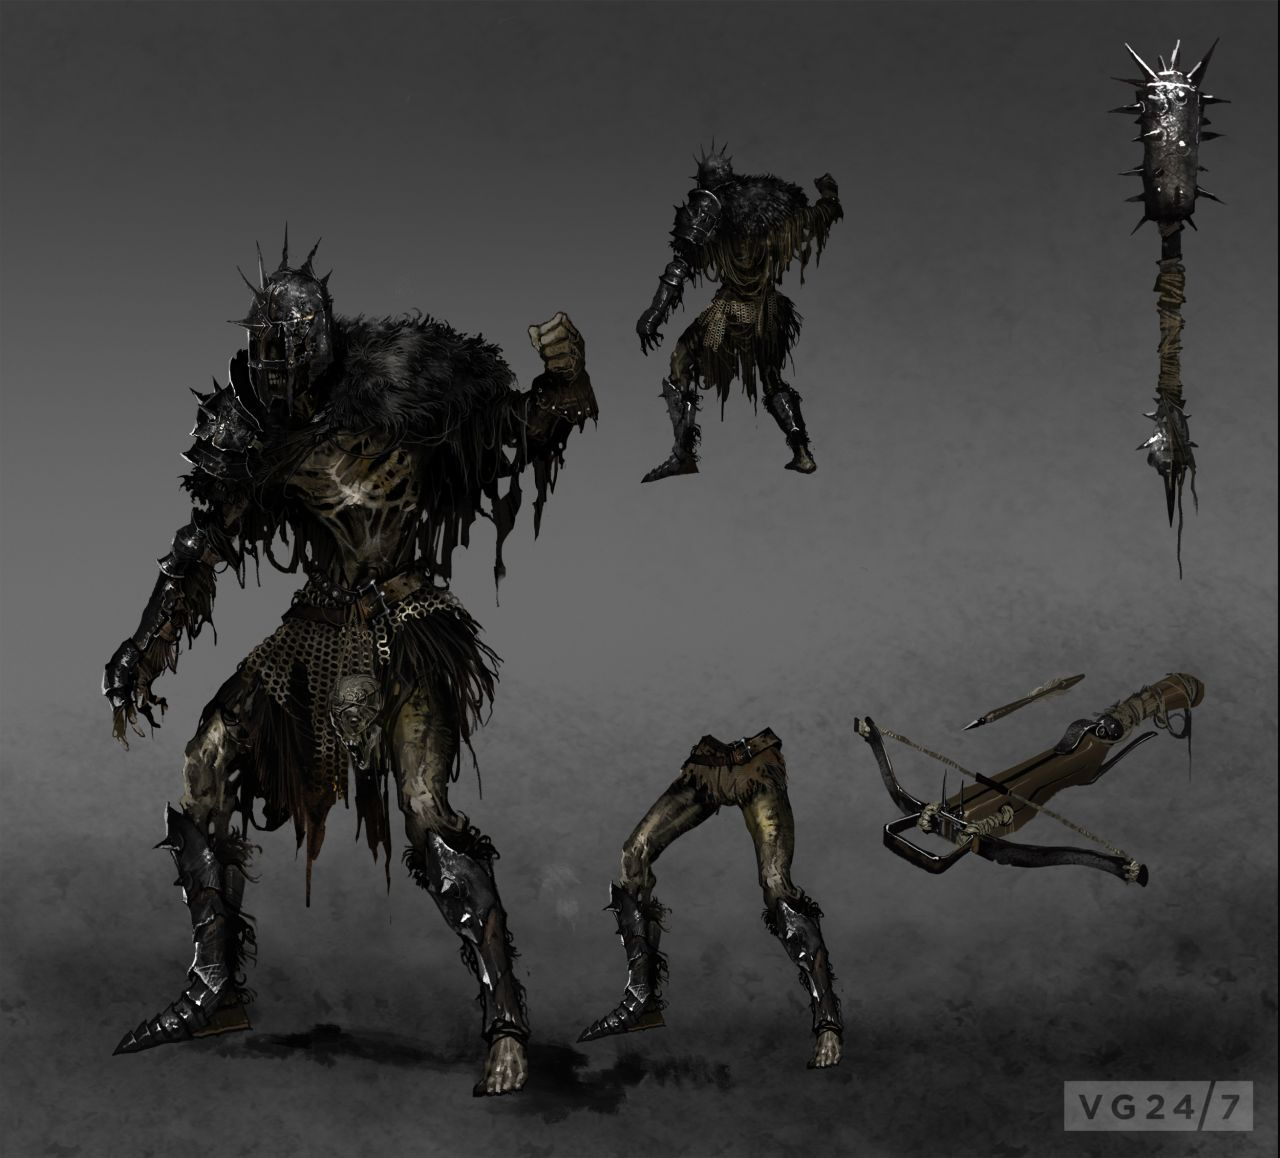 Dark Souls 2 Screens And Concept Art Are Dark, Some A Bit Scary